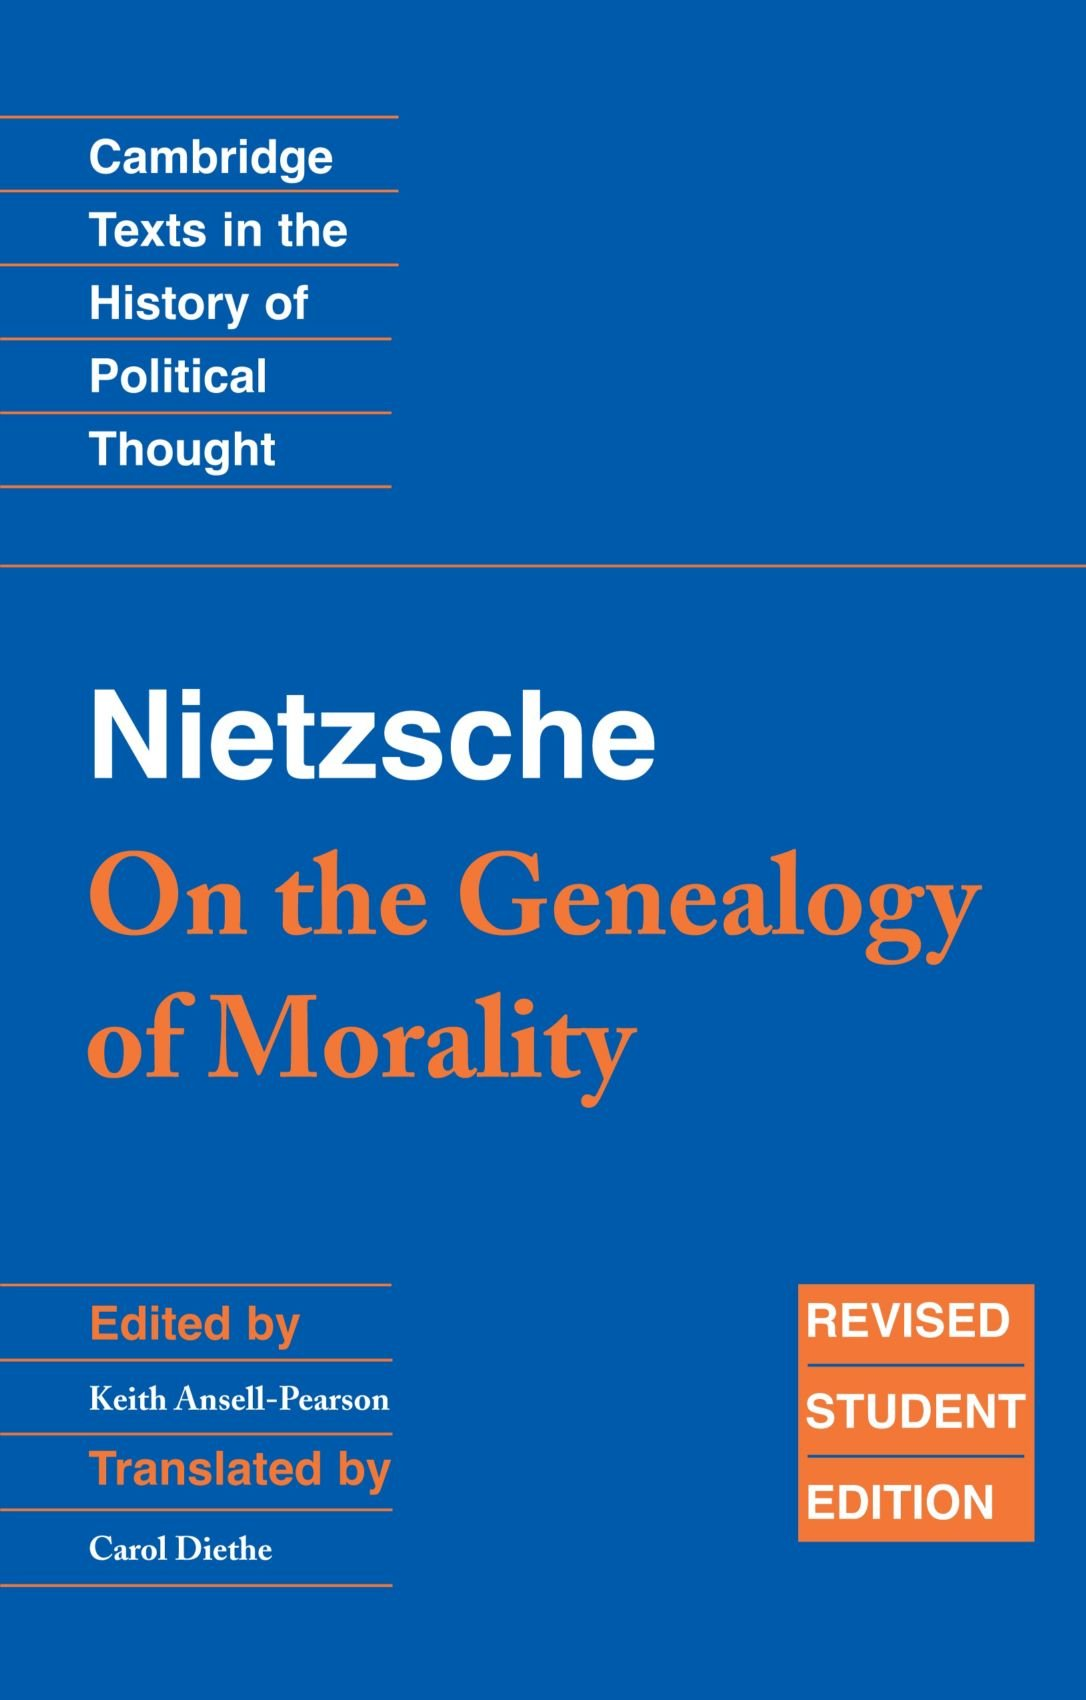 nietzsche genealogy of morals first essay analysis Here, nietzsche uses the term genealogy in its fundamental sense: an account ( logos) of the genesis of a thing  his historical analysis is a radical attack on  these morals, offering a kind of social and psychological account of  first essay.